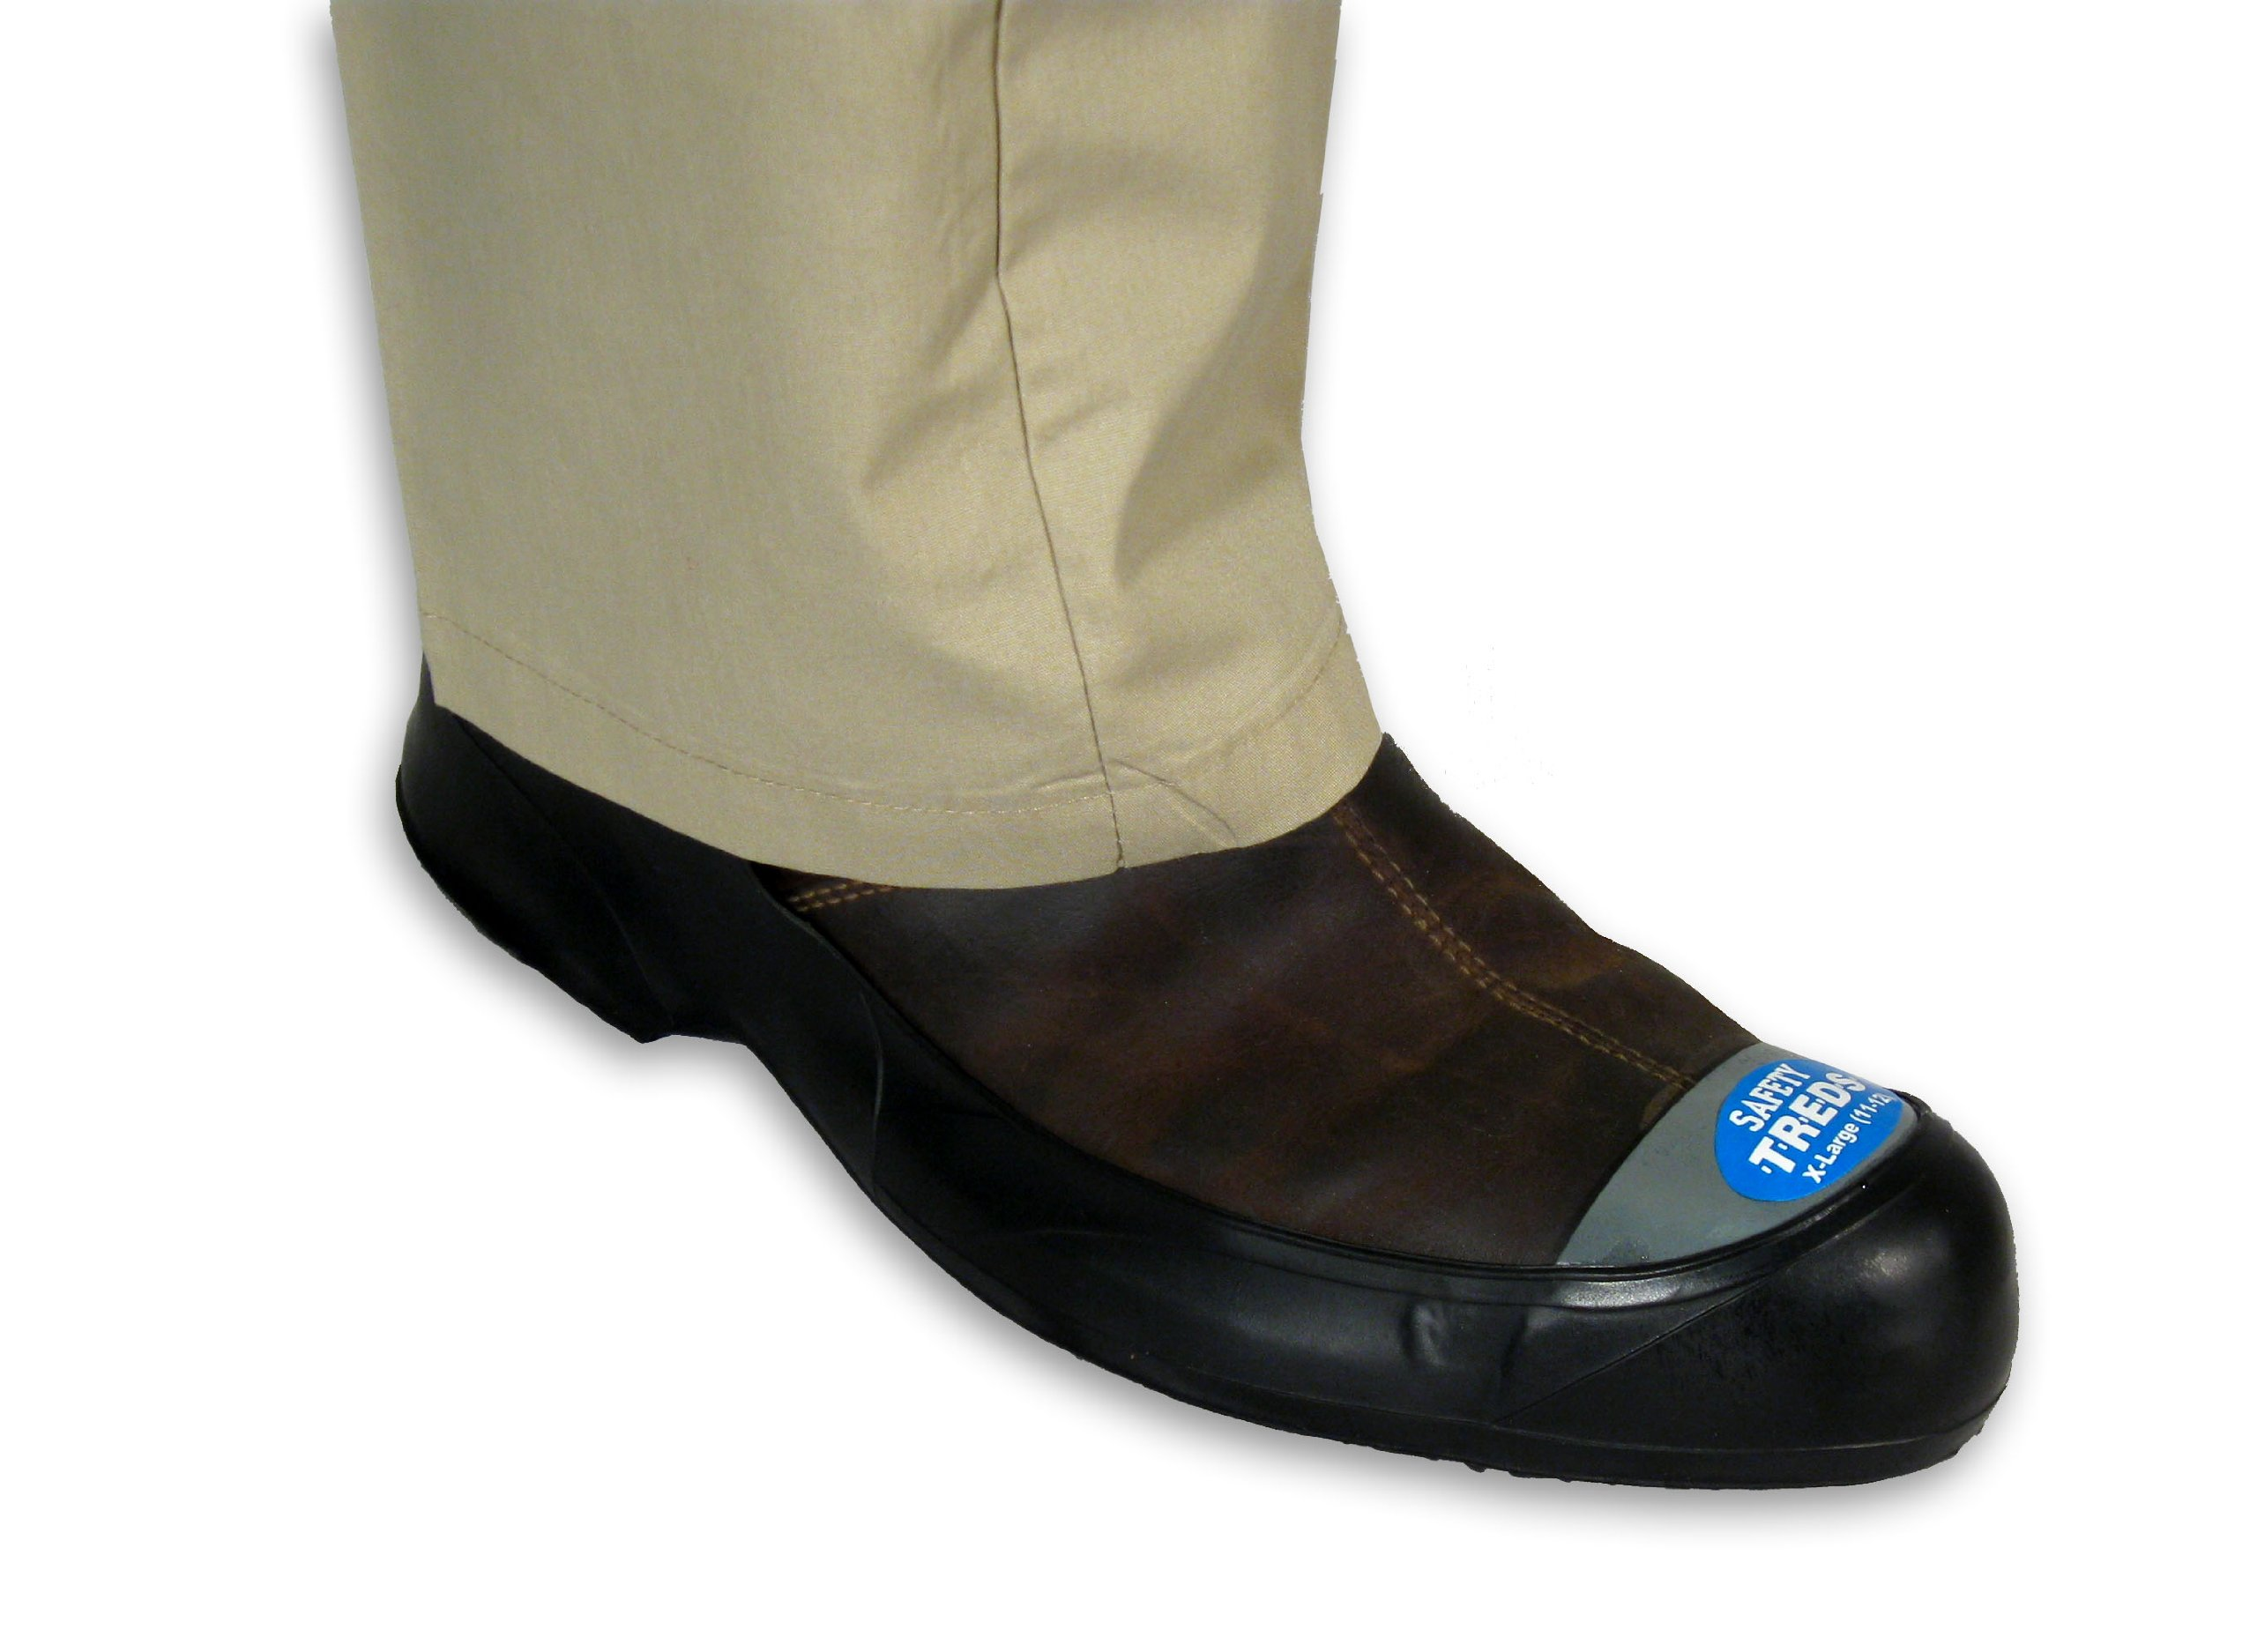 safety treds 13430 steel toe stretch rubber overshoe small